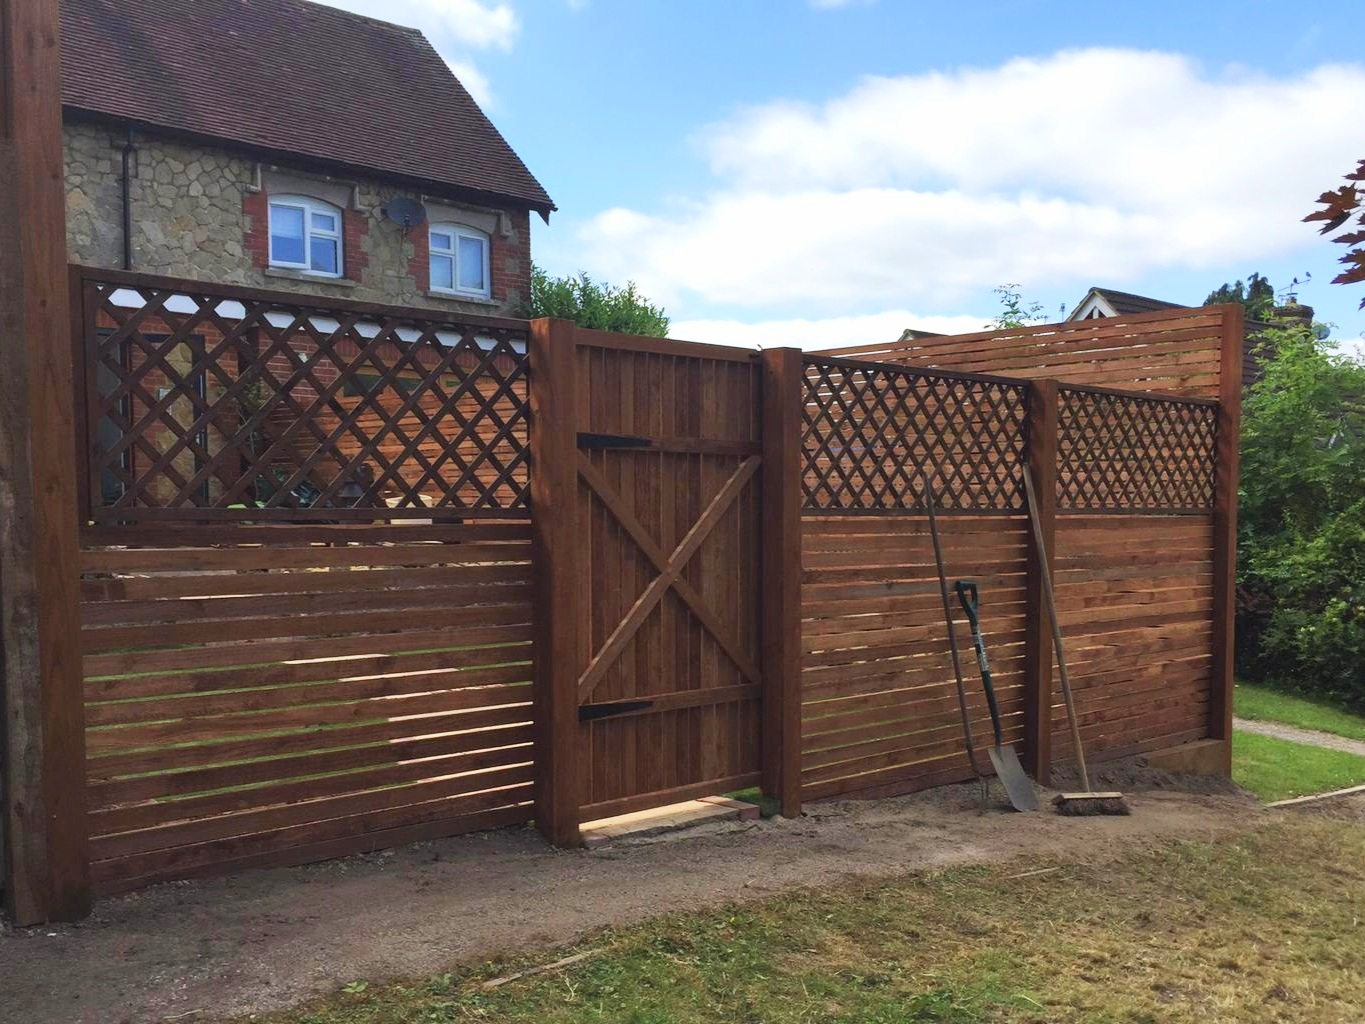 Gates - All types of garden gates for residential, or commercial business